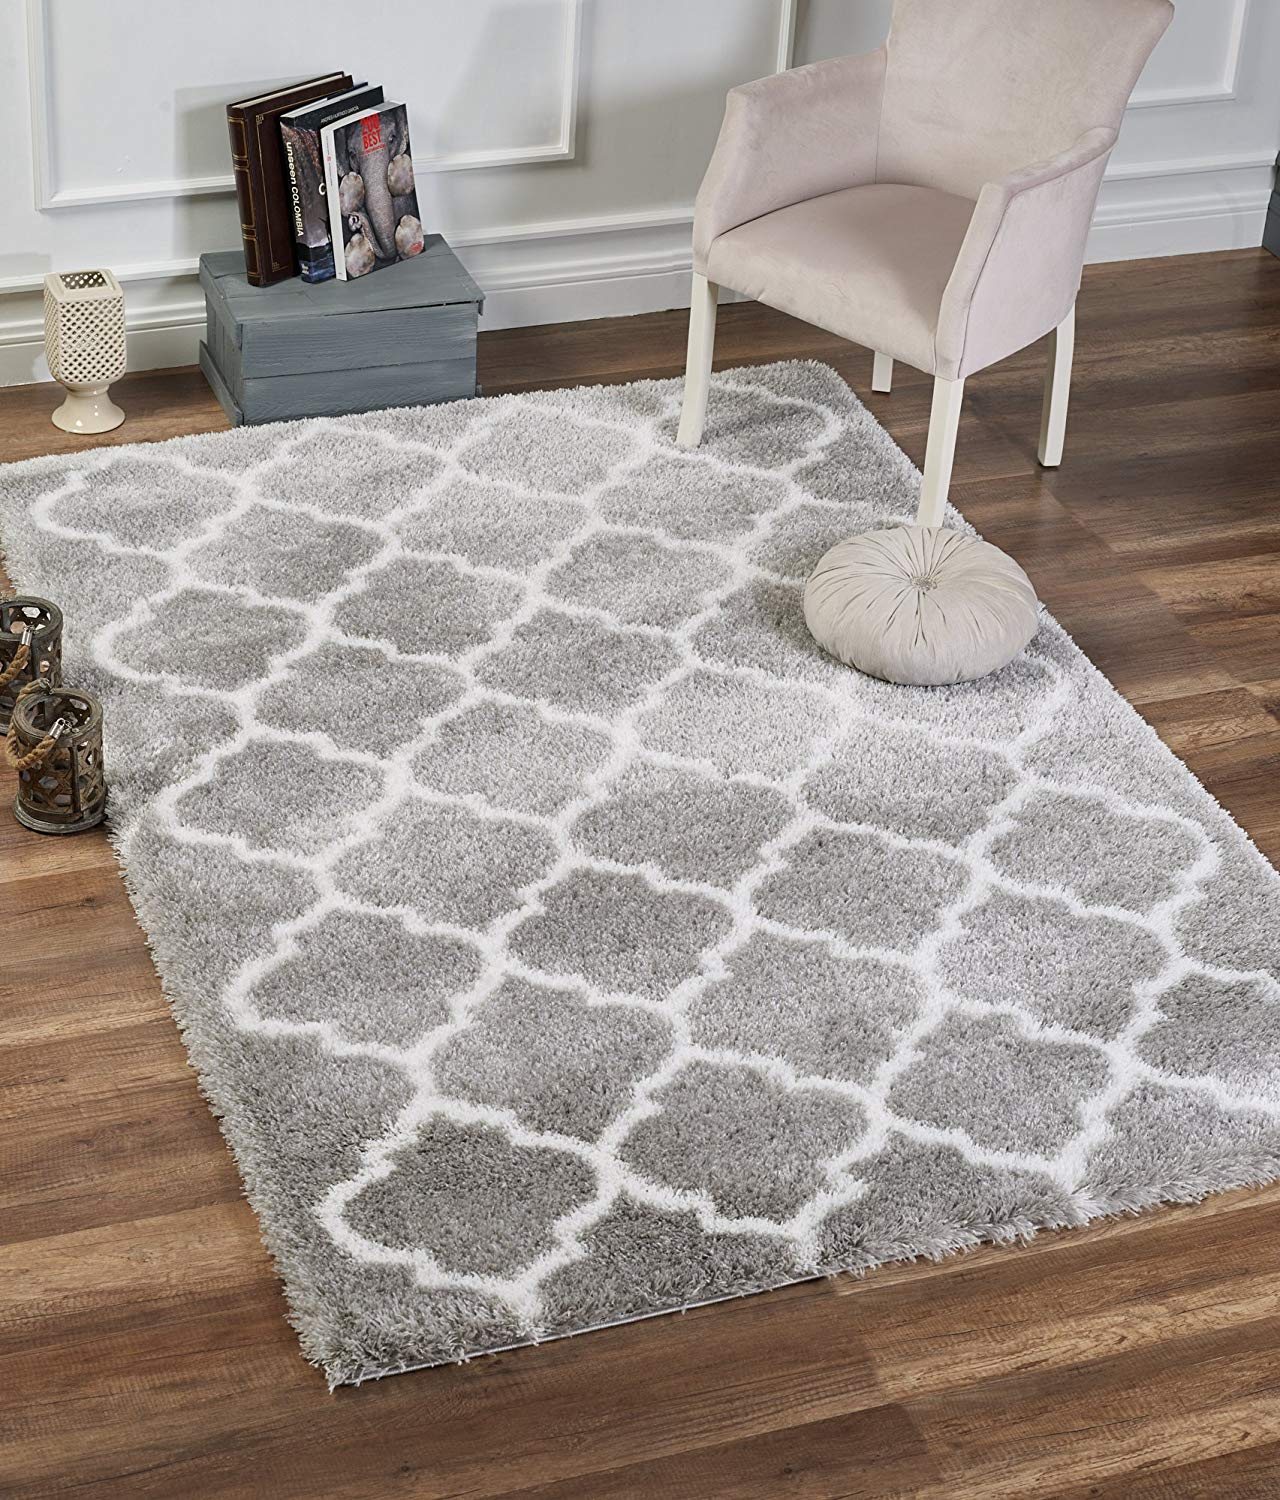 Cheap Cheap 5x7 Rugs Find Cheap 5x7 Rugs Deals On Line At Alibaba Com